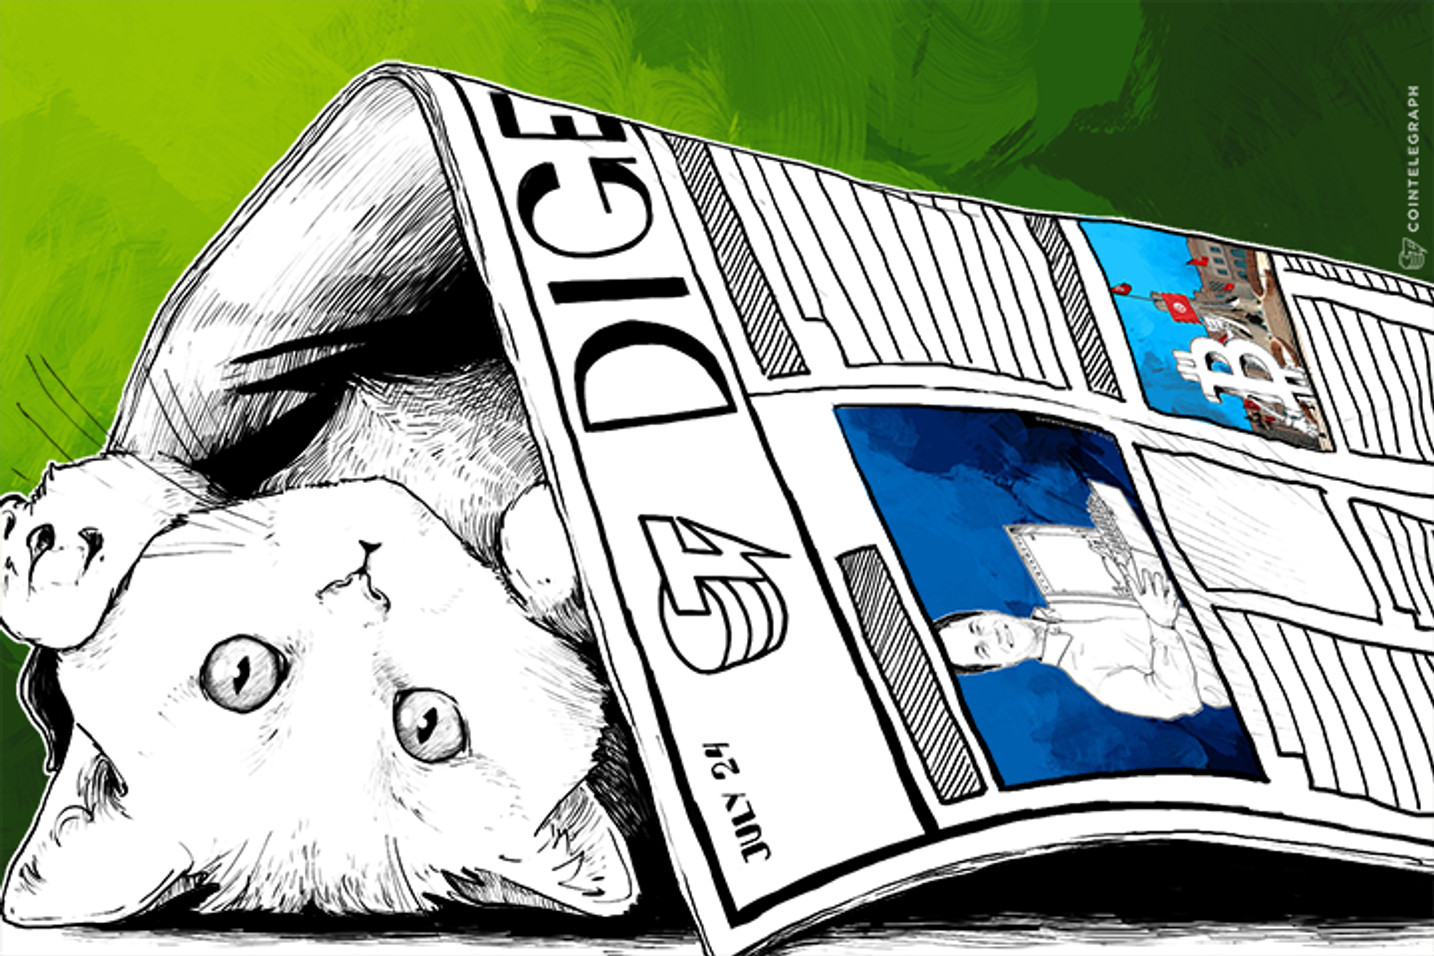 JUL 24 DIGEST: Federal Reserve Publishes Study on Virtual Currency; NASDAQ to Pioneer Bitcoin Tech